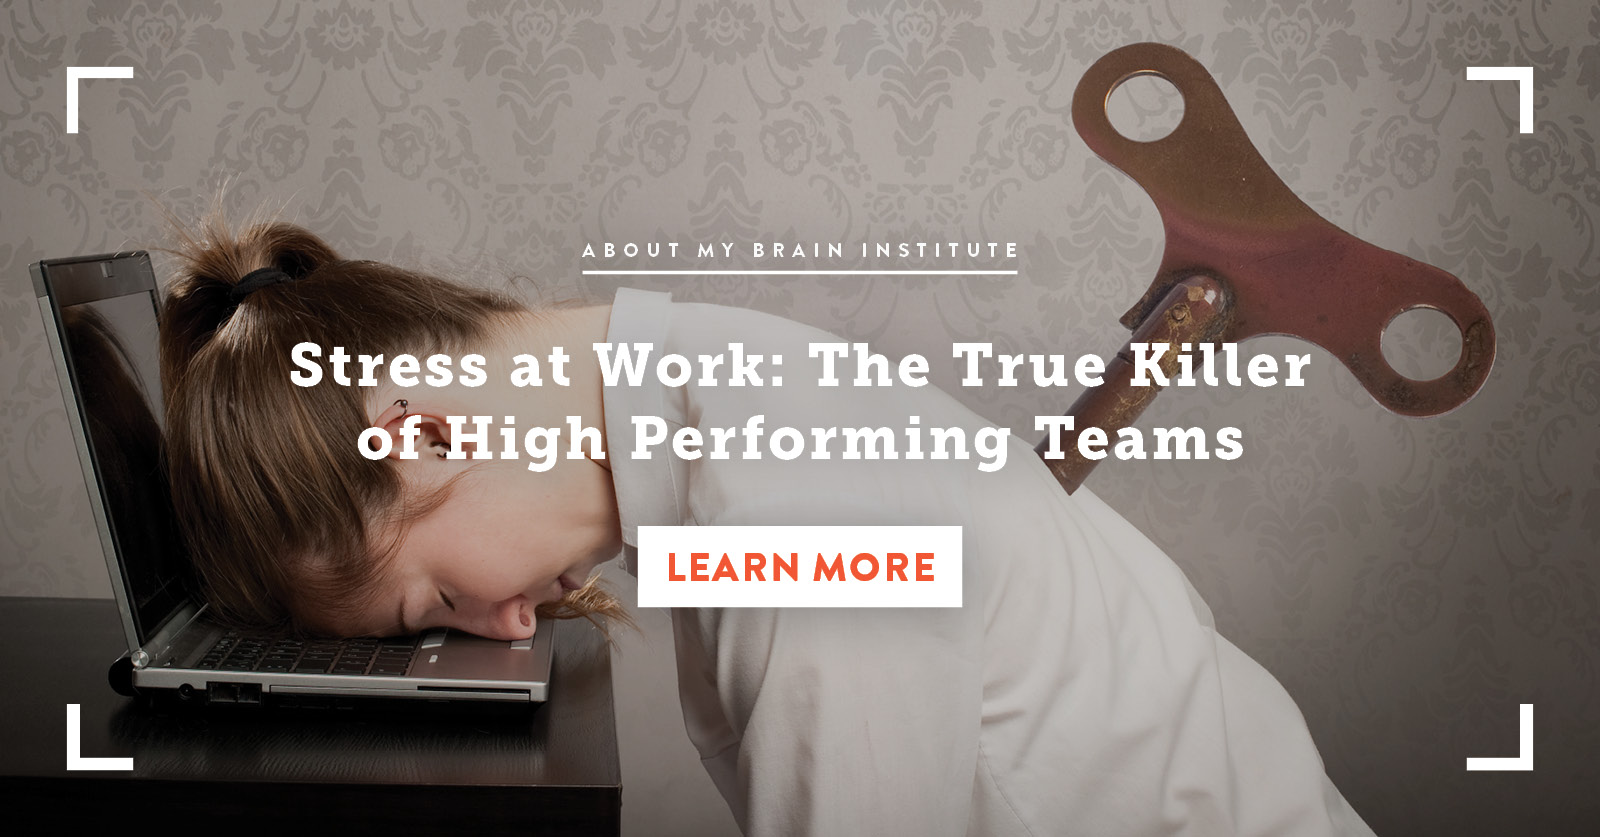 Stress at Work - The True Killer of High Performing Teams